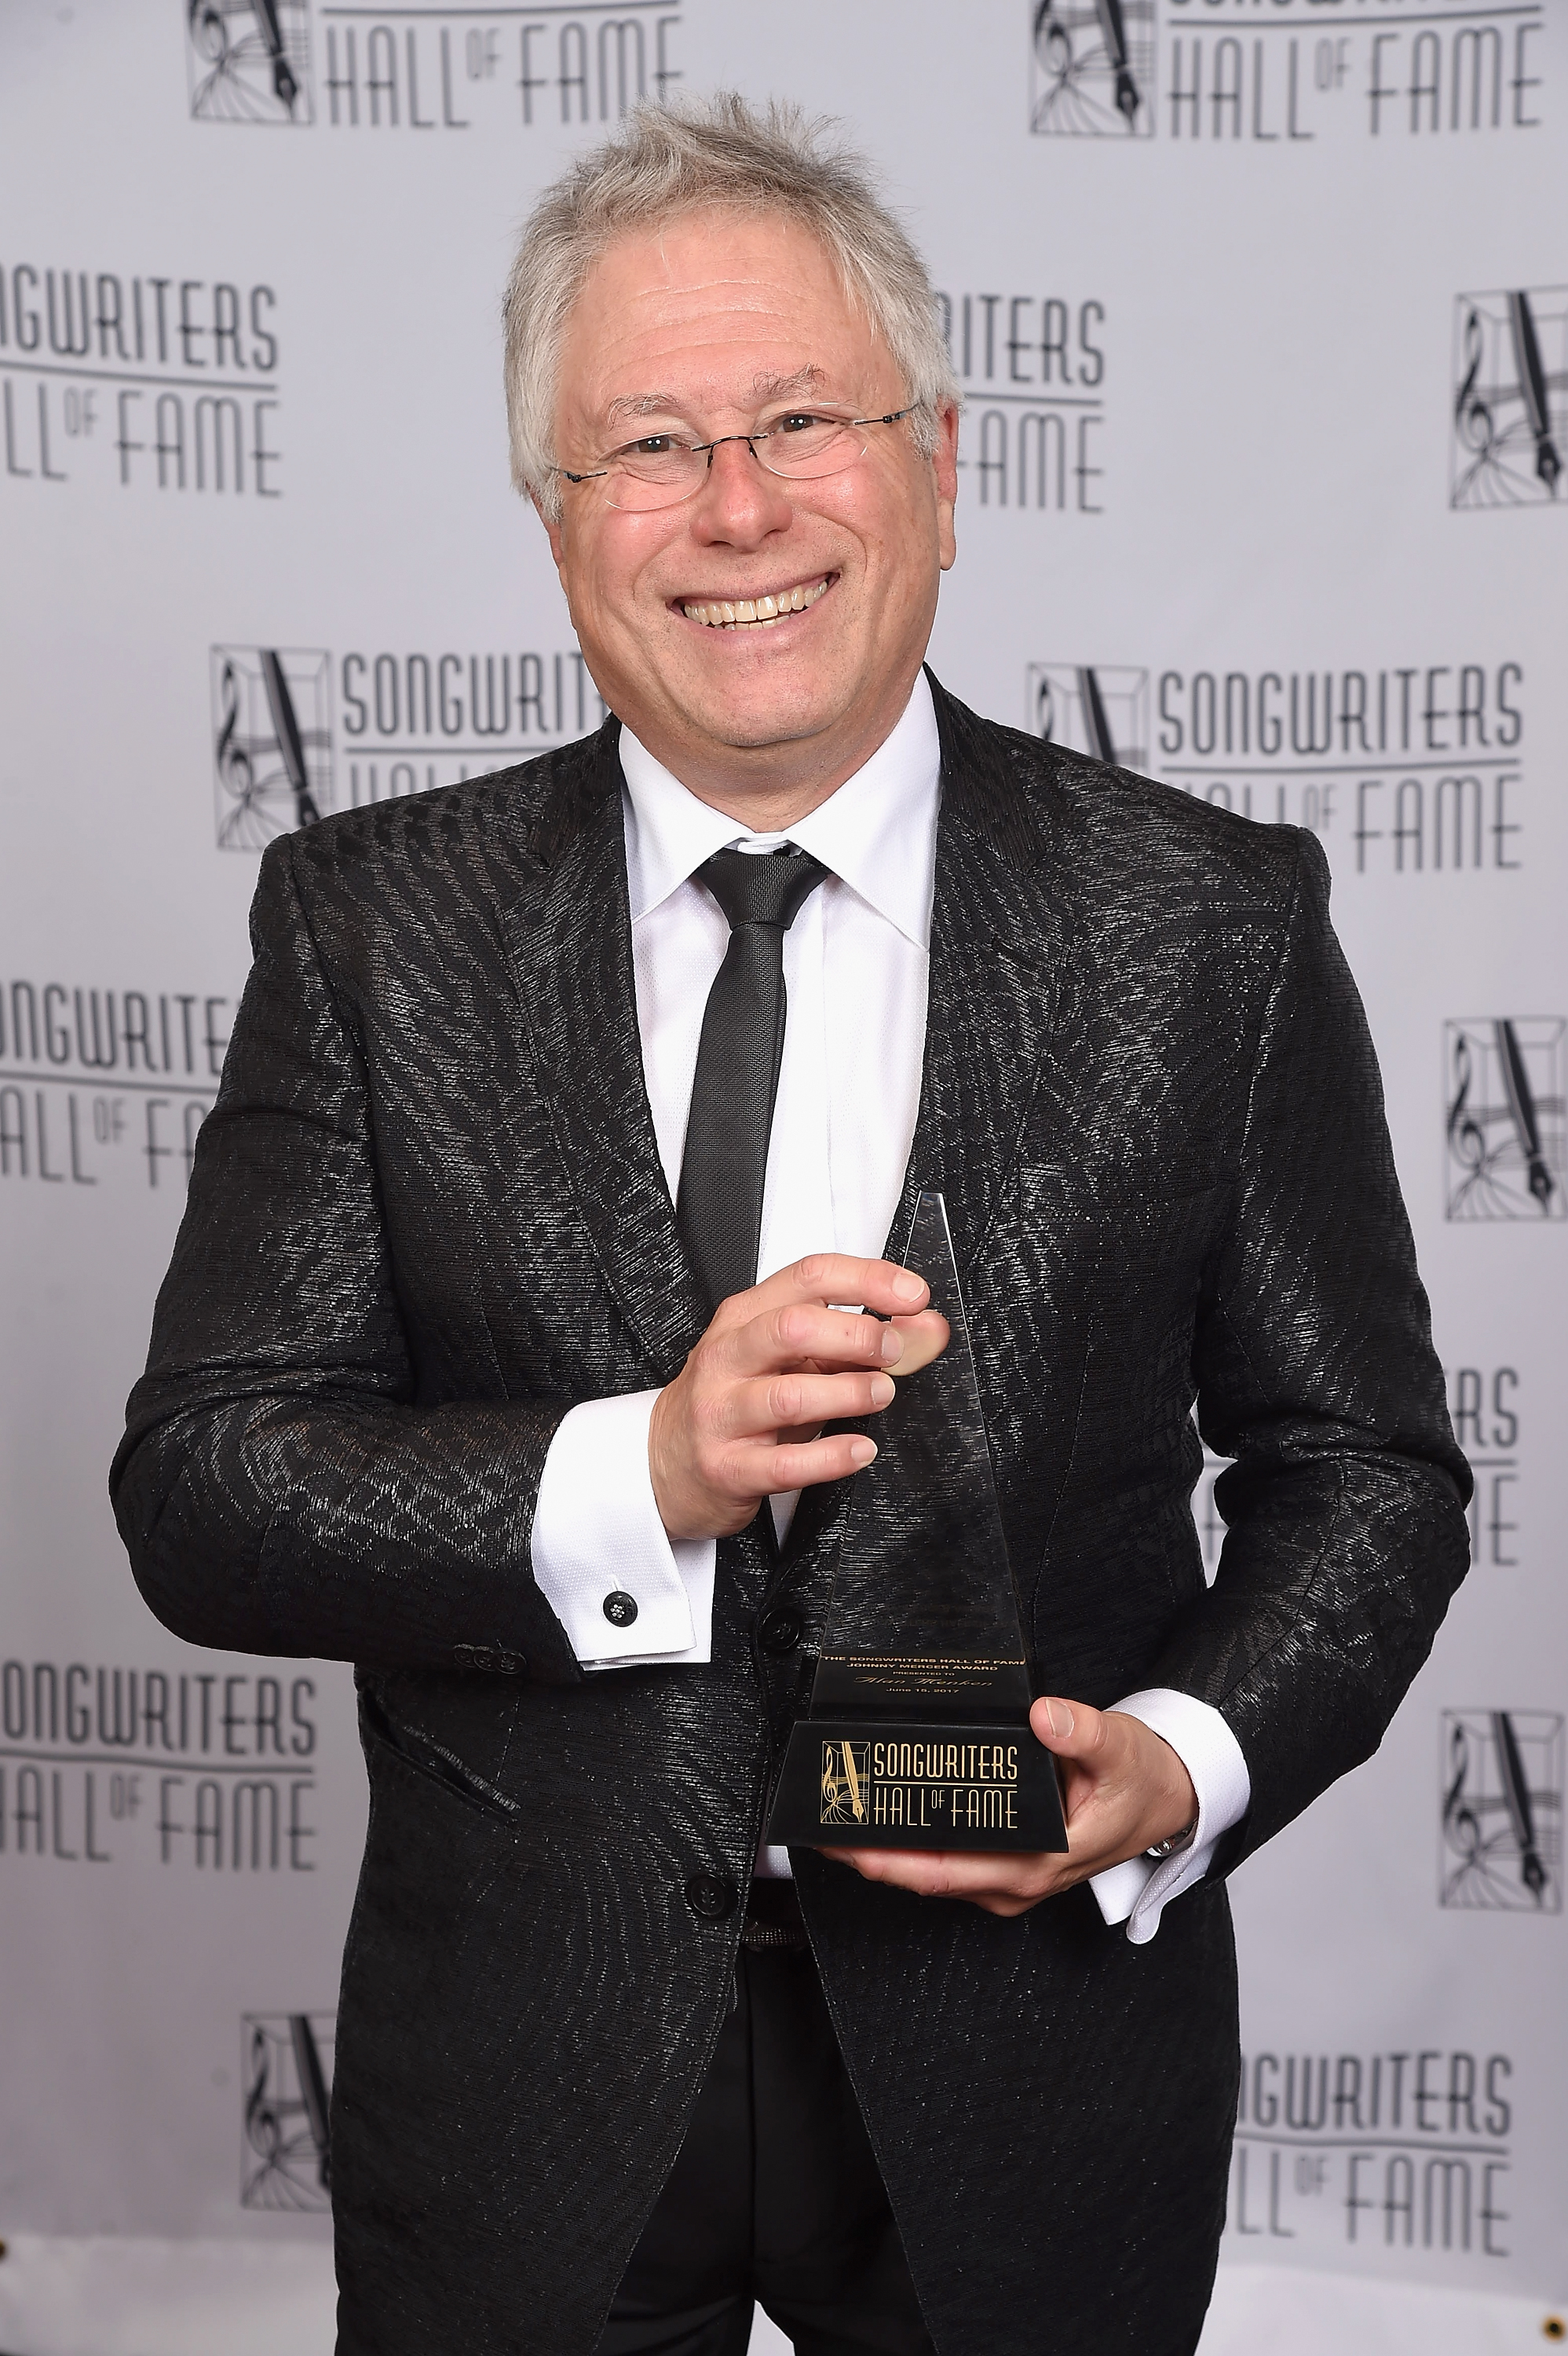 NEW YORK, NY - JUNE 15:  Johnny Mercer Award Honoree Alan Menken poses with award backstage at the Songwriters Hall Of Fame 48th Annual Induction and Awards at New York Marriott Marquis Hotel on June 15, 2017 in New York City.  (Photo by Gary Gershoff/Getty Images for Songwriters Hall Of Fame) *** Local Caption *** Alan Menken